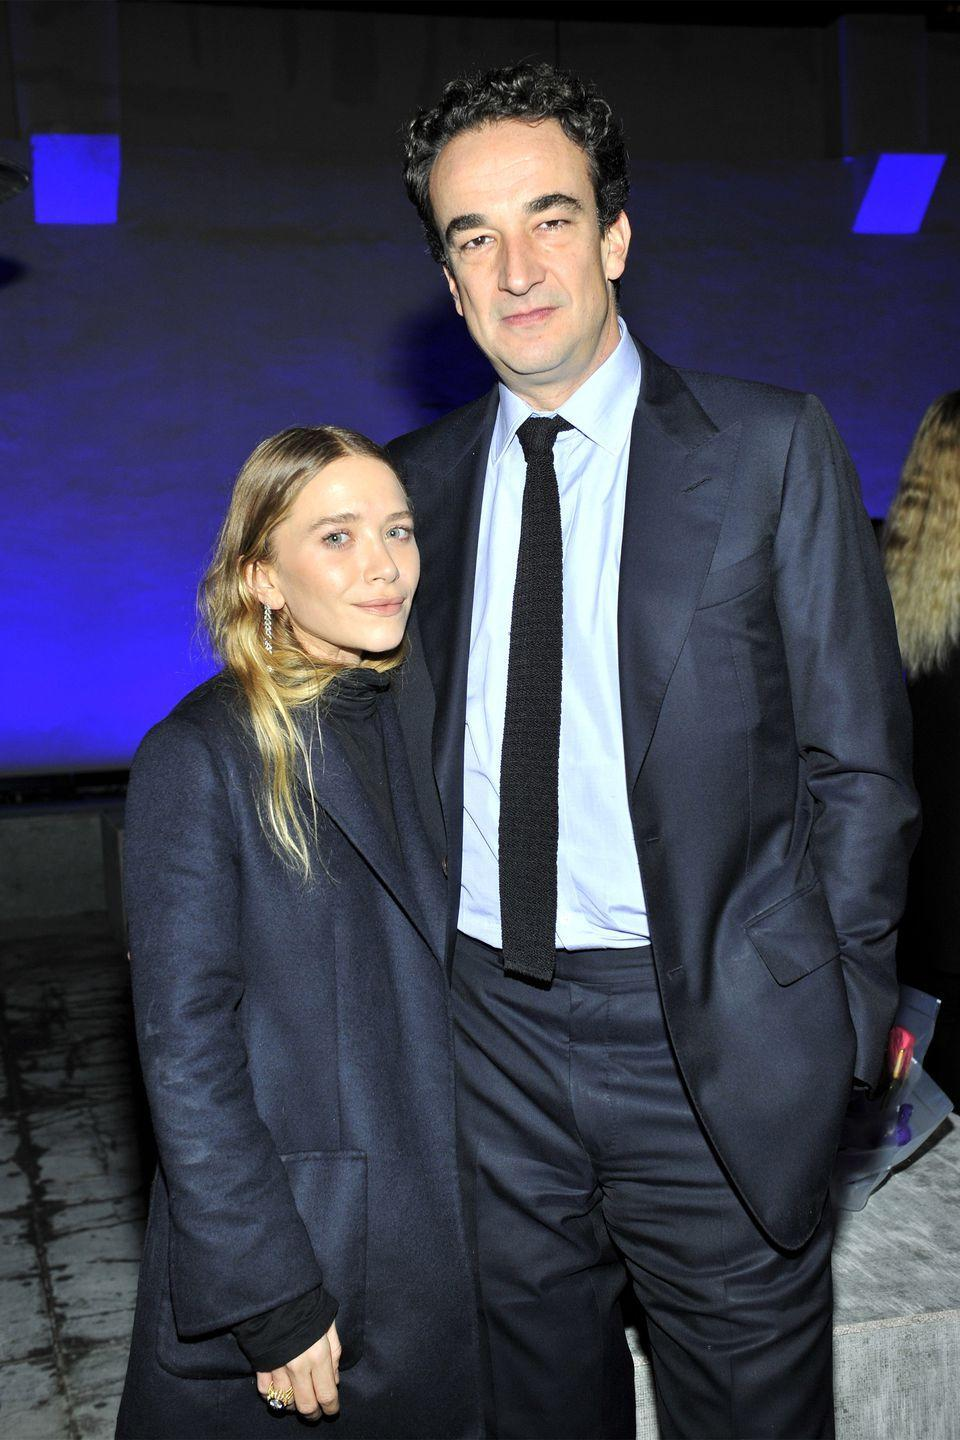 "<p>French banker Olivier Sarkozy, 50, and Mary-Kate Olsen, 33, got engaged in 2014 after reportedly dating for two years. The couple married in a small ceremony in 2015, where <a href=""https://pagesix.com/2015/11/29/mary-kate-olsen-and-olivier-sarkozy-tie-the-knot/"" rel=""nofollow noopener"" target=""_blank"" data-ylk=""slk:party decor included"" class=""link rapid-noclick-resp"">party decor included</a> ""bowls and bowls filled with cigarettes."" The two <a href=""https://www.usmagazine.com/celebrity-news/news/mary-kate-olsen-opens-up-about-married-life-with-olivier-sarkozy-w471229/"" rel=""nofollow noopener"" target=""_blank"" data-ylk=""slk:currently reside"" class=""link rapid-noclick-resp"">currently reside</a> in a $6.25 million townhouse in New York City.</p>"